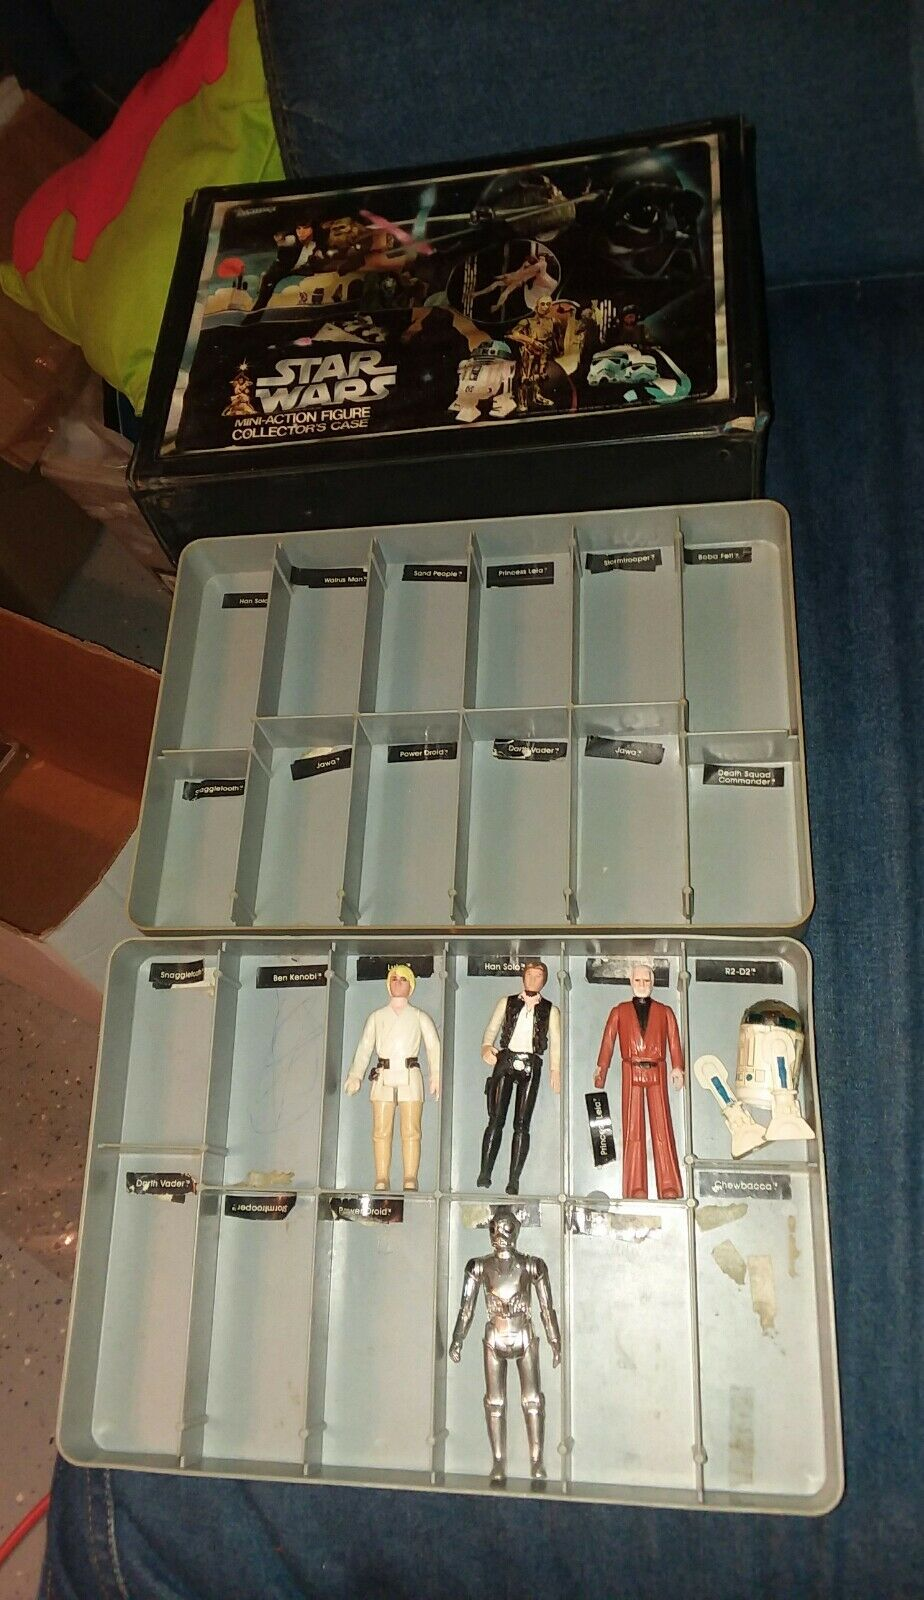 1977 STAR WARS Mini Action FIGURE Collectors CASE by Kenner r2d2 han solo obiwam